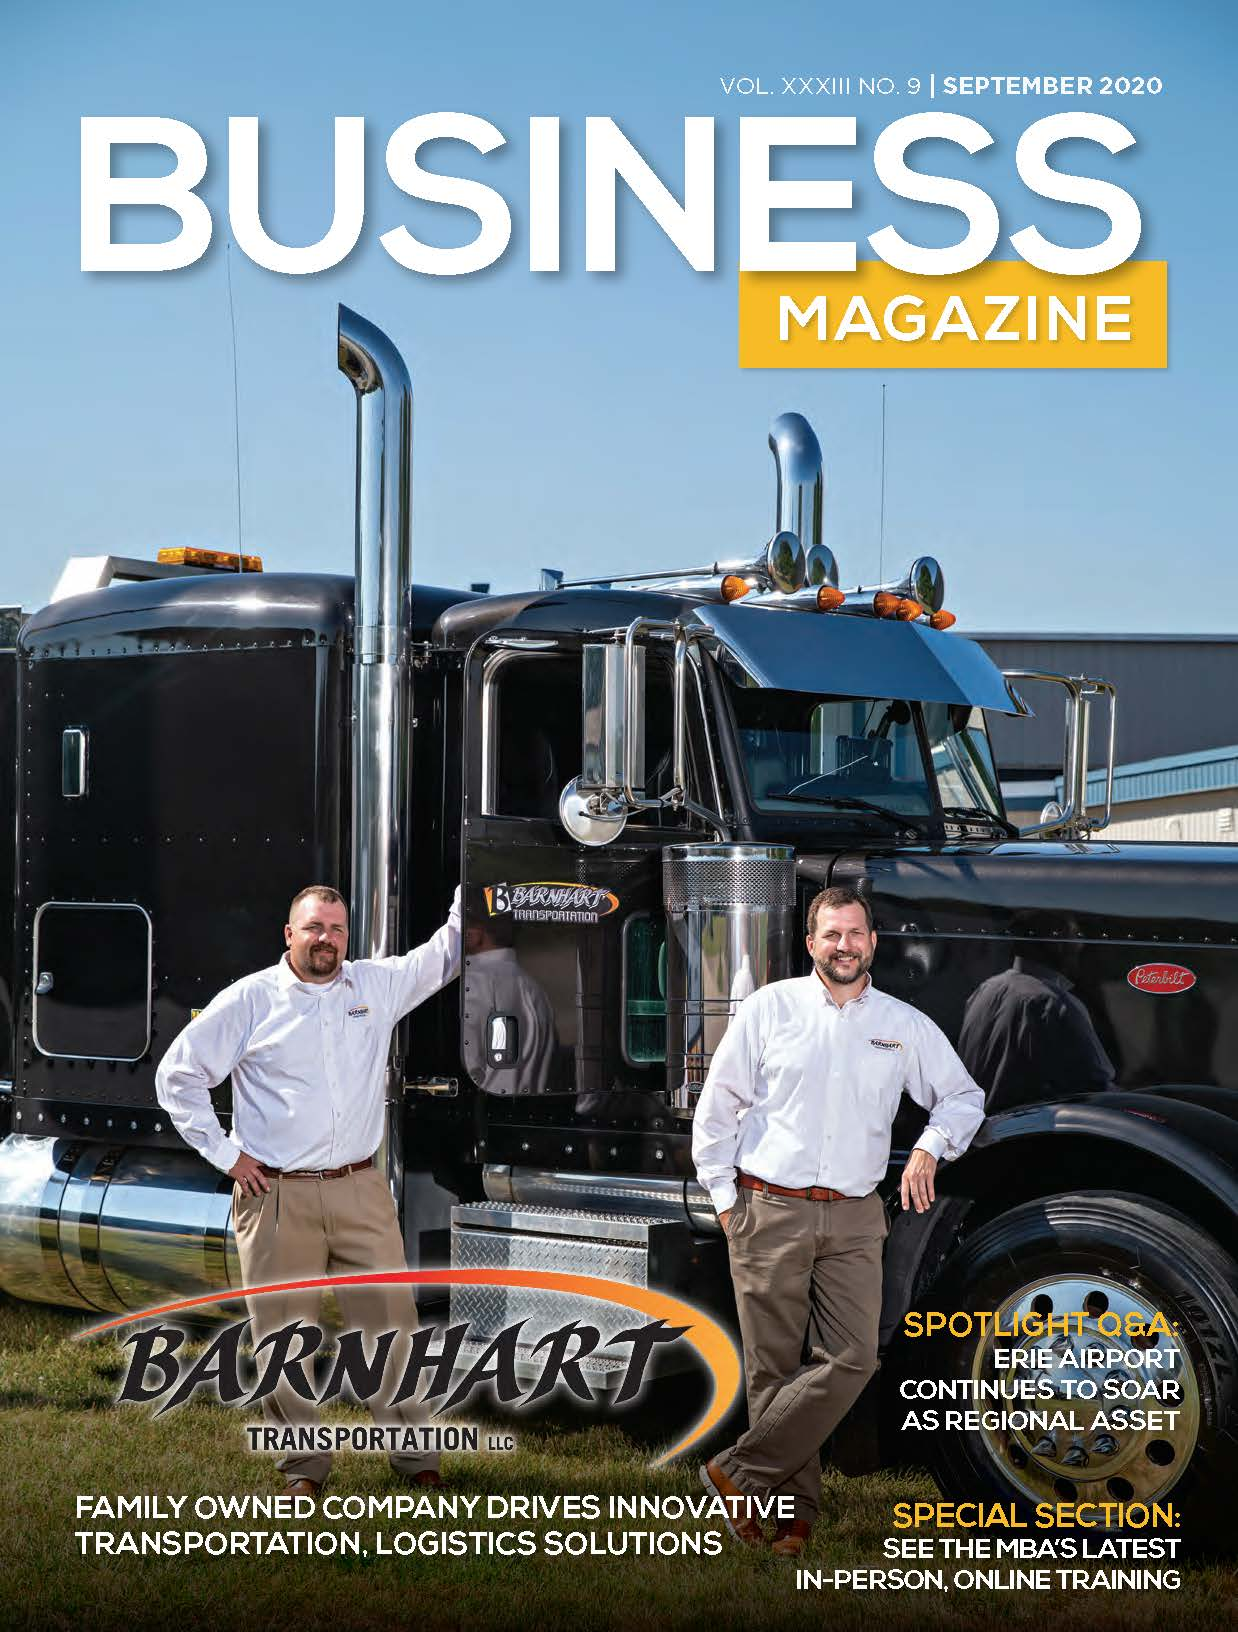 Barnhart featured on the cover of Manufacturers and Business Magazine